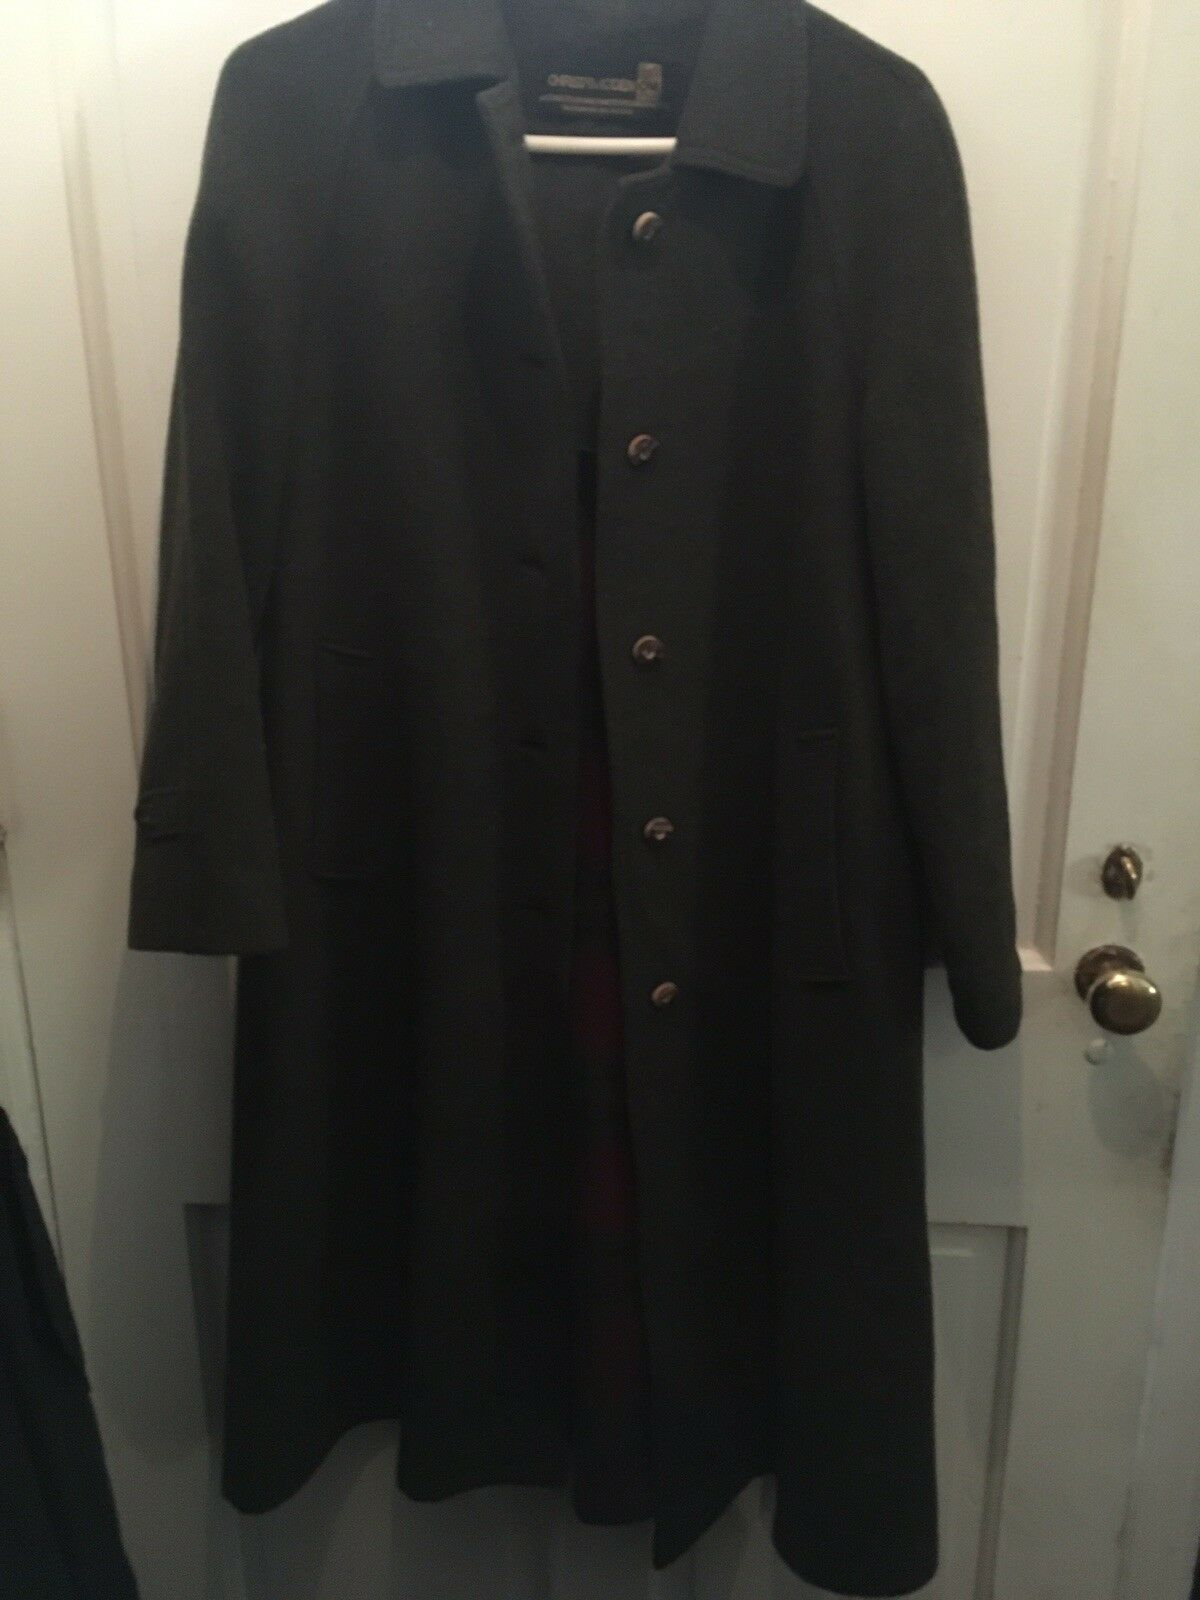 CHRISTAMODEN LADIES COAT SIZE 38 DOUBLE FACE WOOL MADE IN AUSTRIA